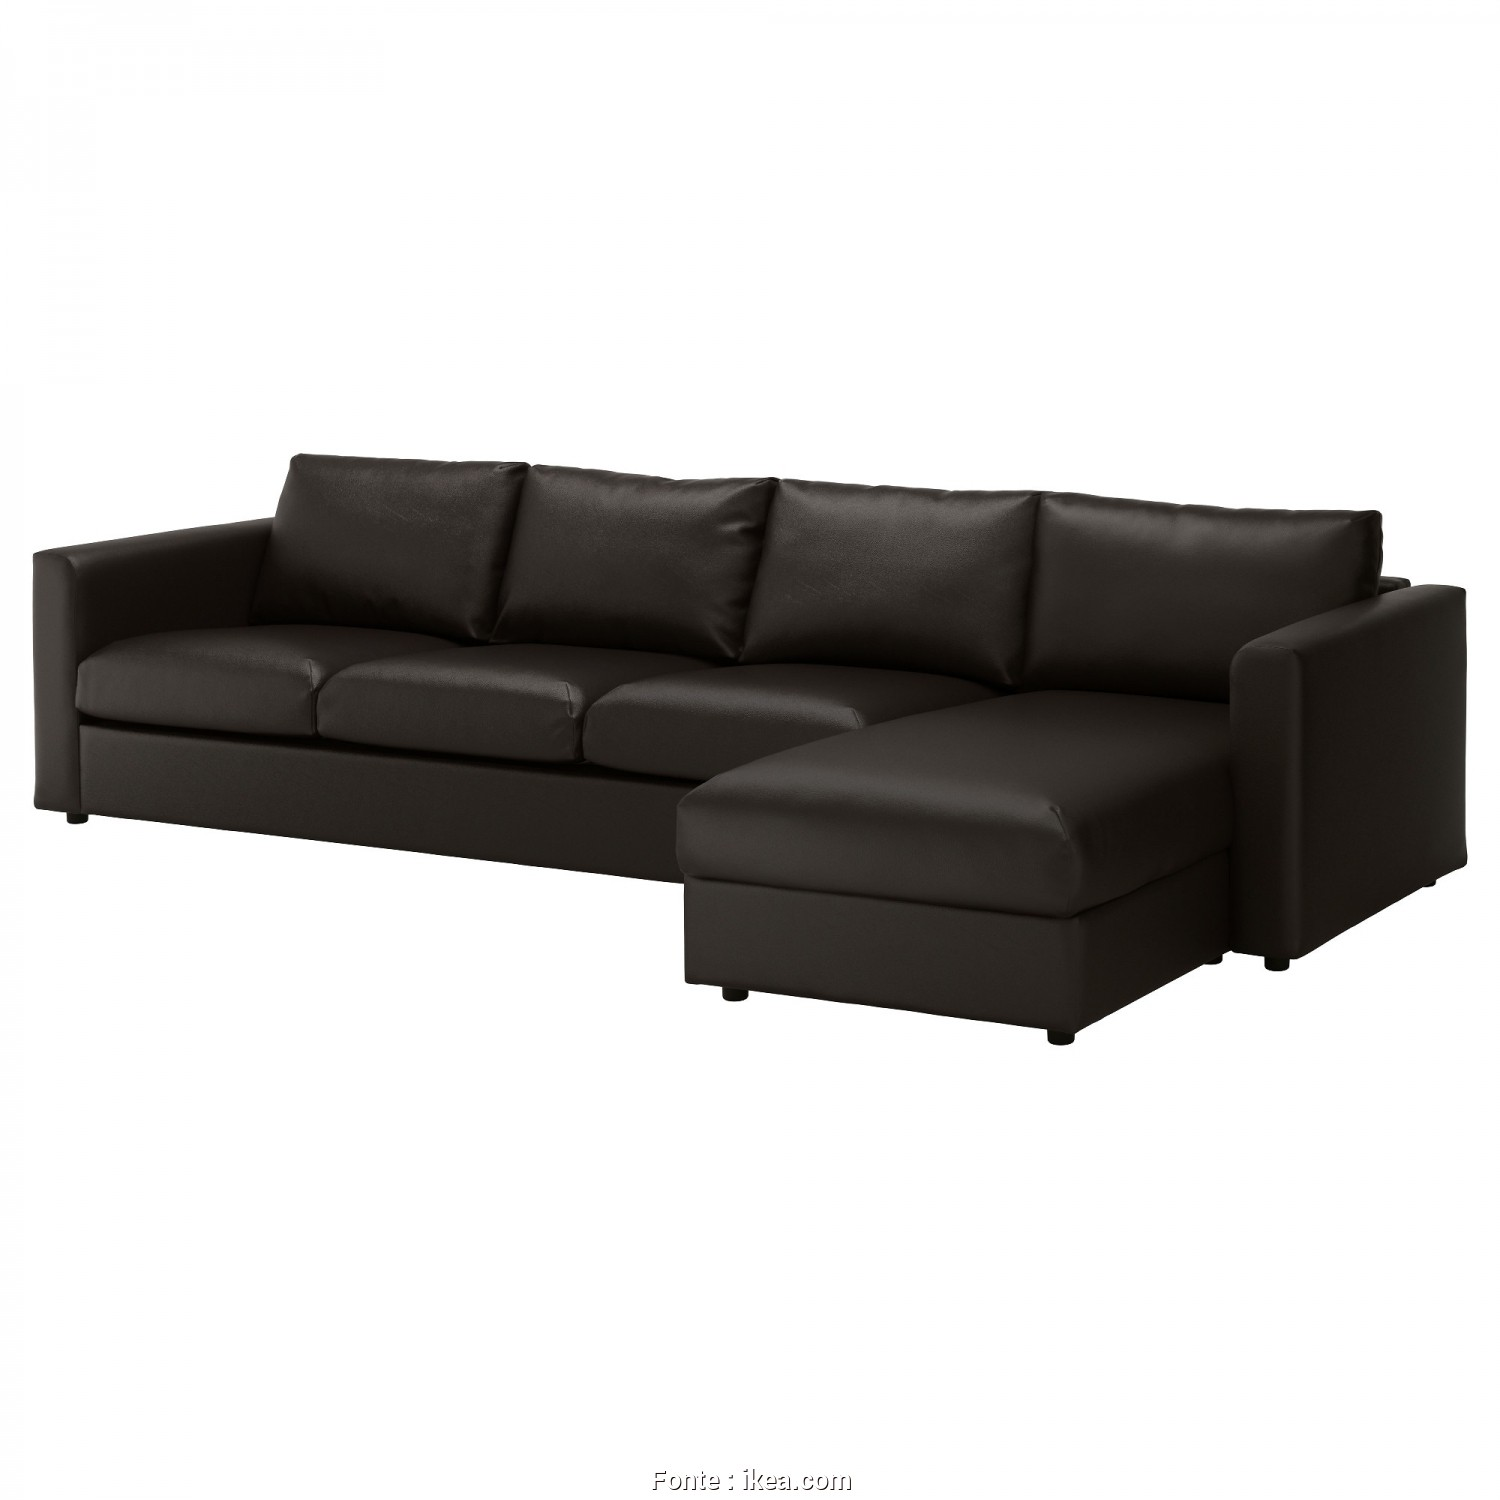 Ikea Klippan Wymiary, Bellissimo IKEA VIMLE 4-Seat Sofa, Cover Is Easy To Keep Clean As It Can